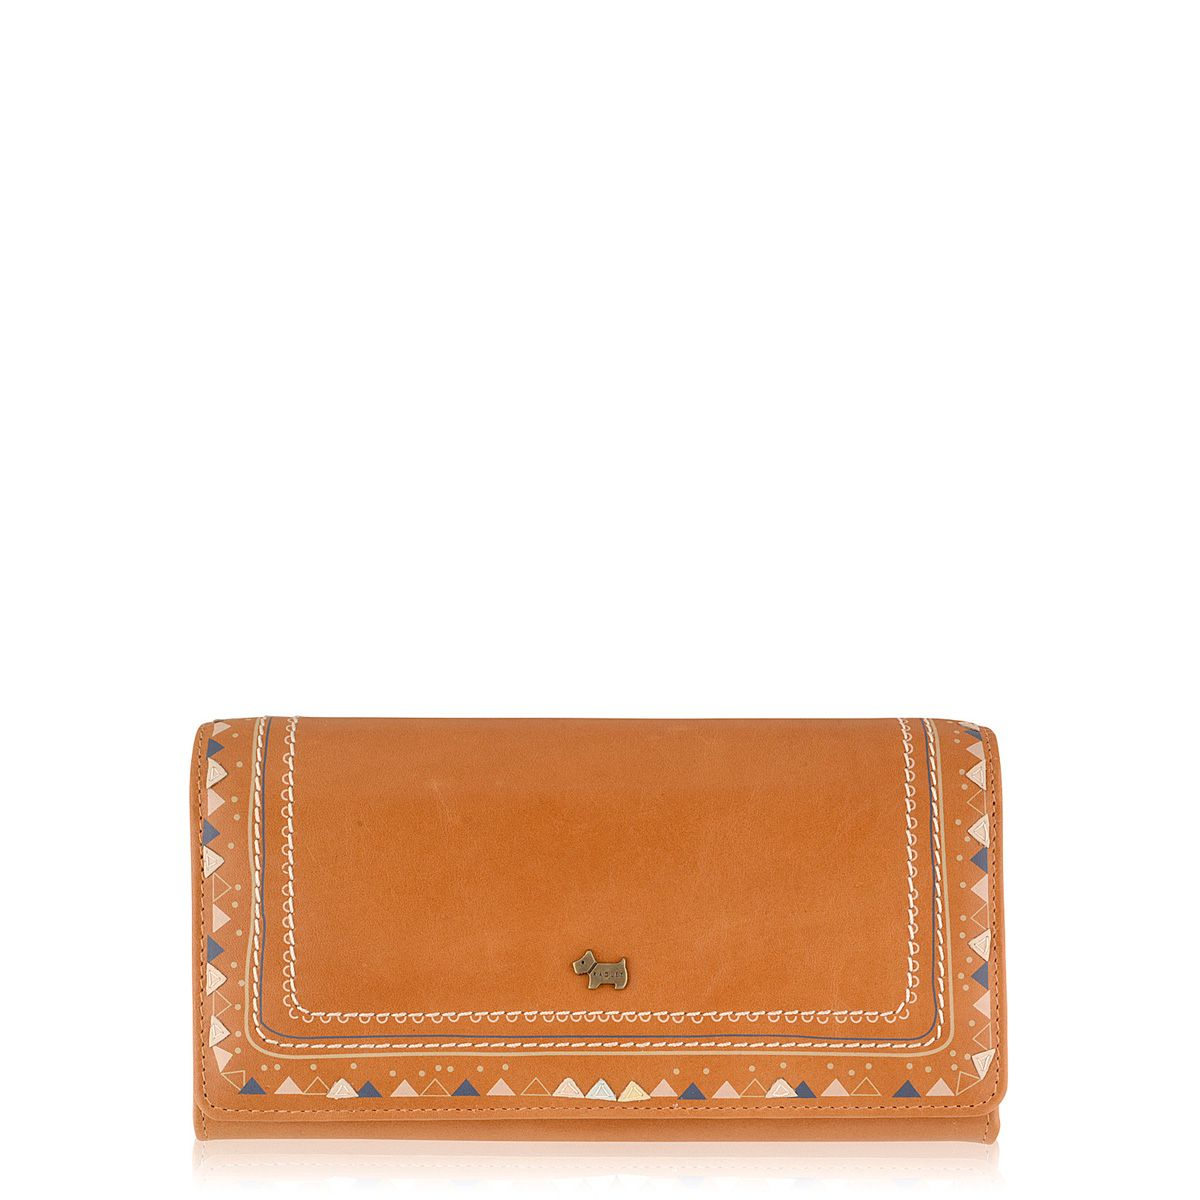 Eyre tan large flapover purse